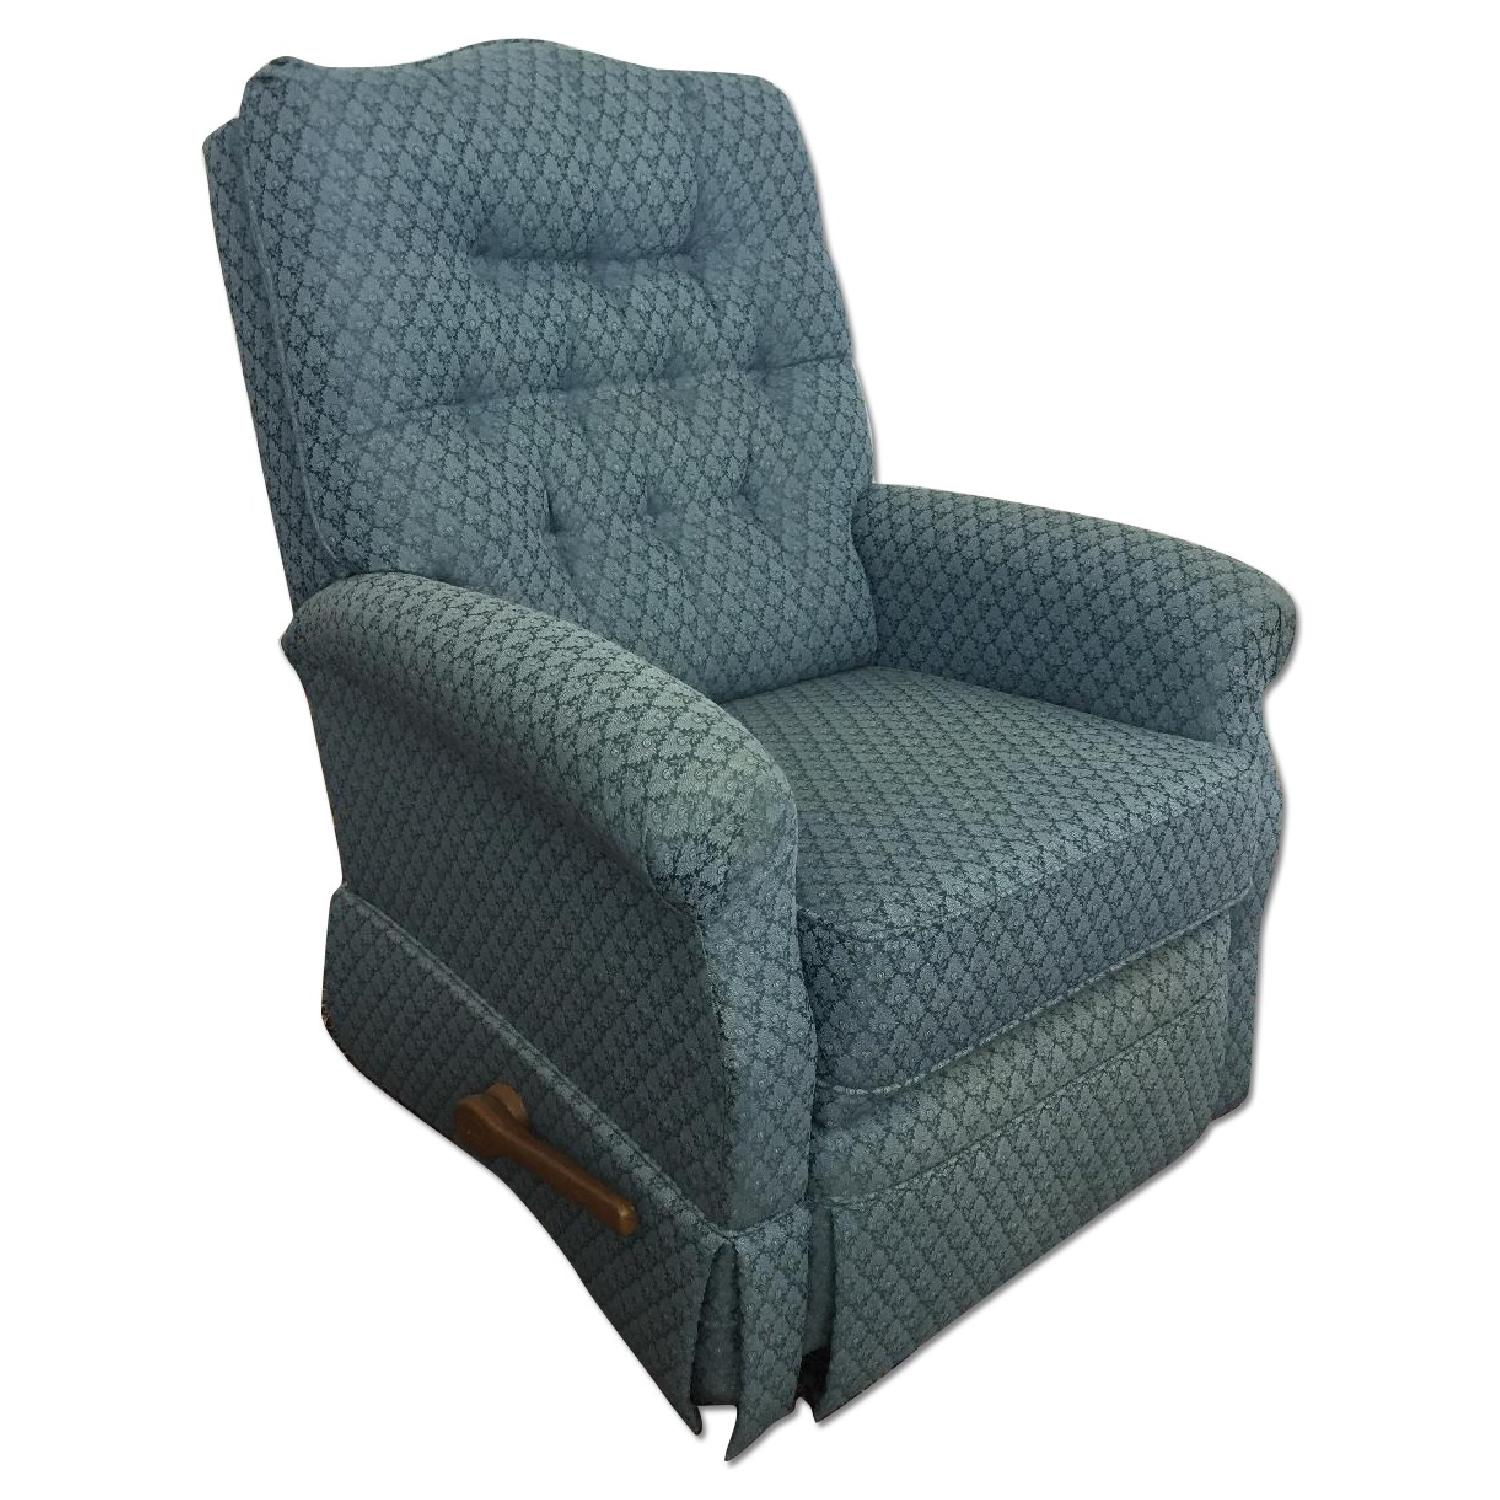 Rocking recliner chairs - La Z Boy Rocker Recliner Chairs